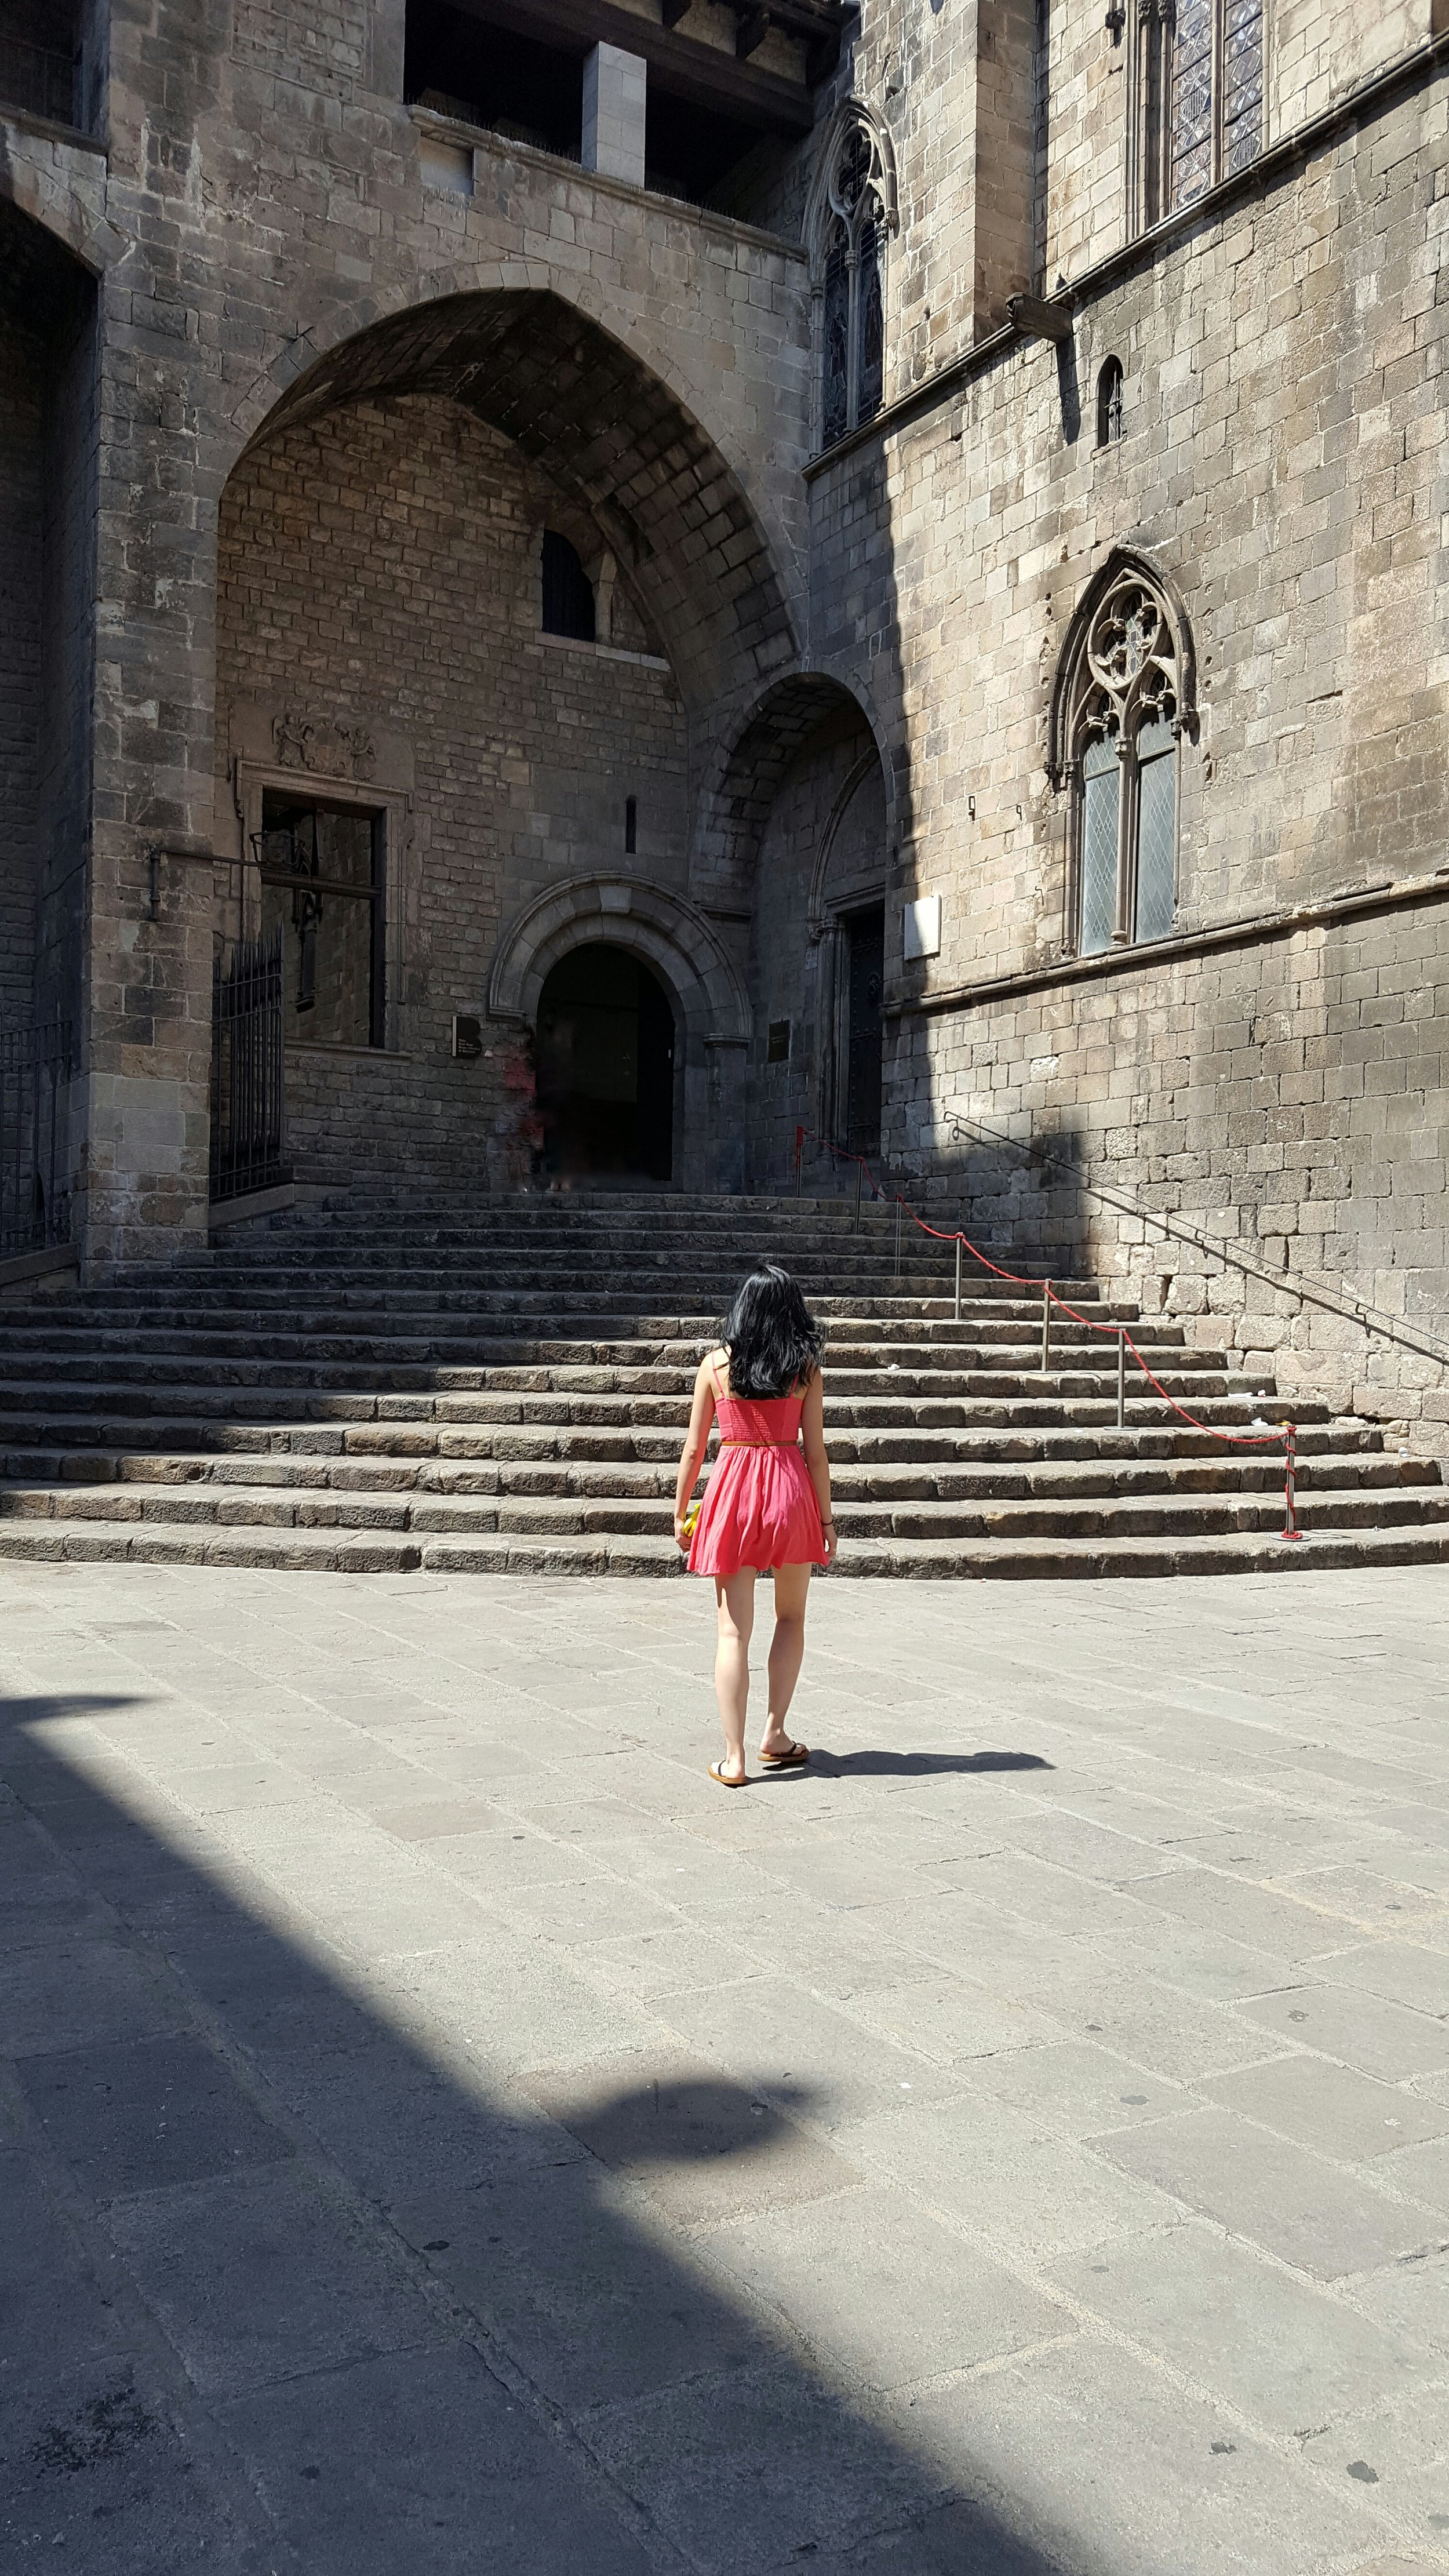 The steps that Christopher Columbus climbed to announce his discover of the New World.